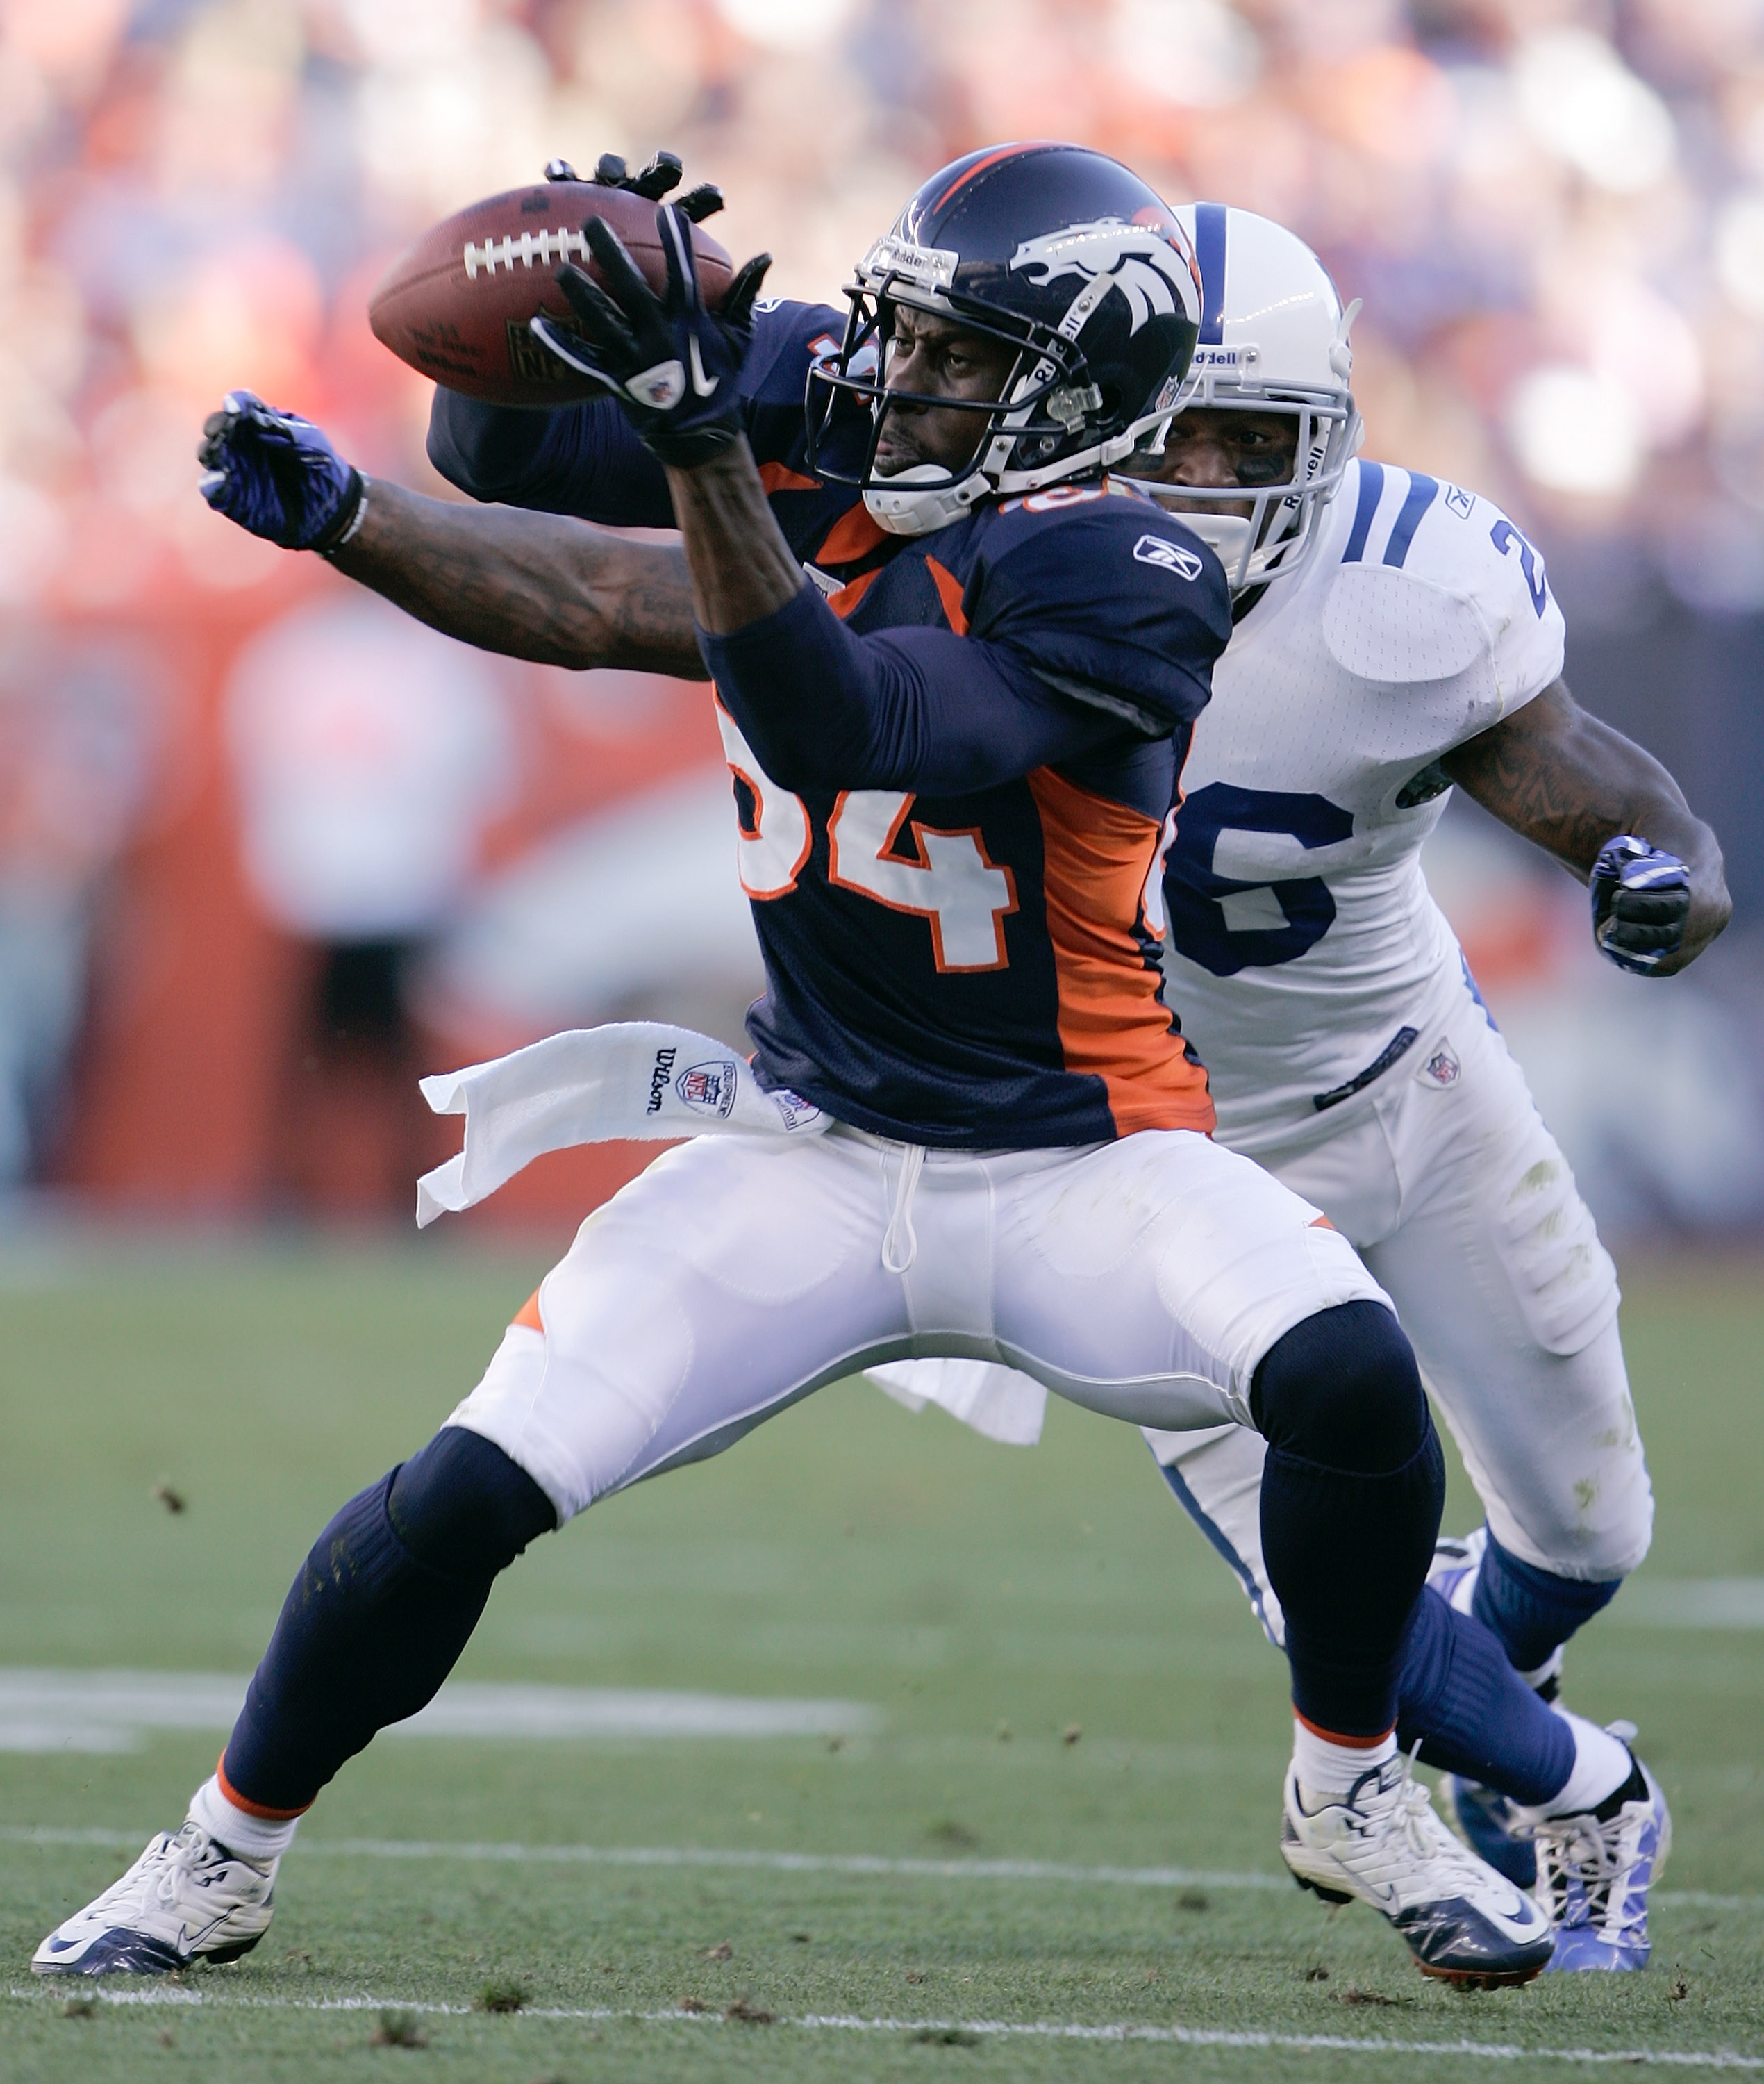 DENVER - SEPTEMBER 26:  Wide receiver Brandon Lloyd #84 of the Denver Broncos makes a catch in front of cornerback Kelvin Hayden #26 of the Indianapolis Colts during NFL action at INVESCO Field at Mile High on September 26, 2010 in Denver, Colorado. The C